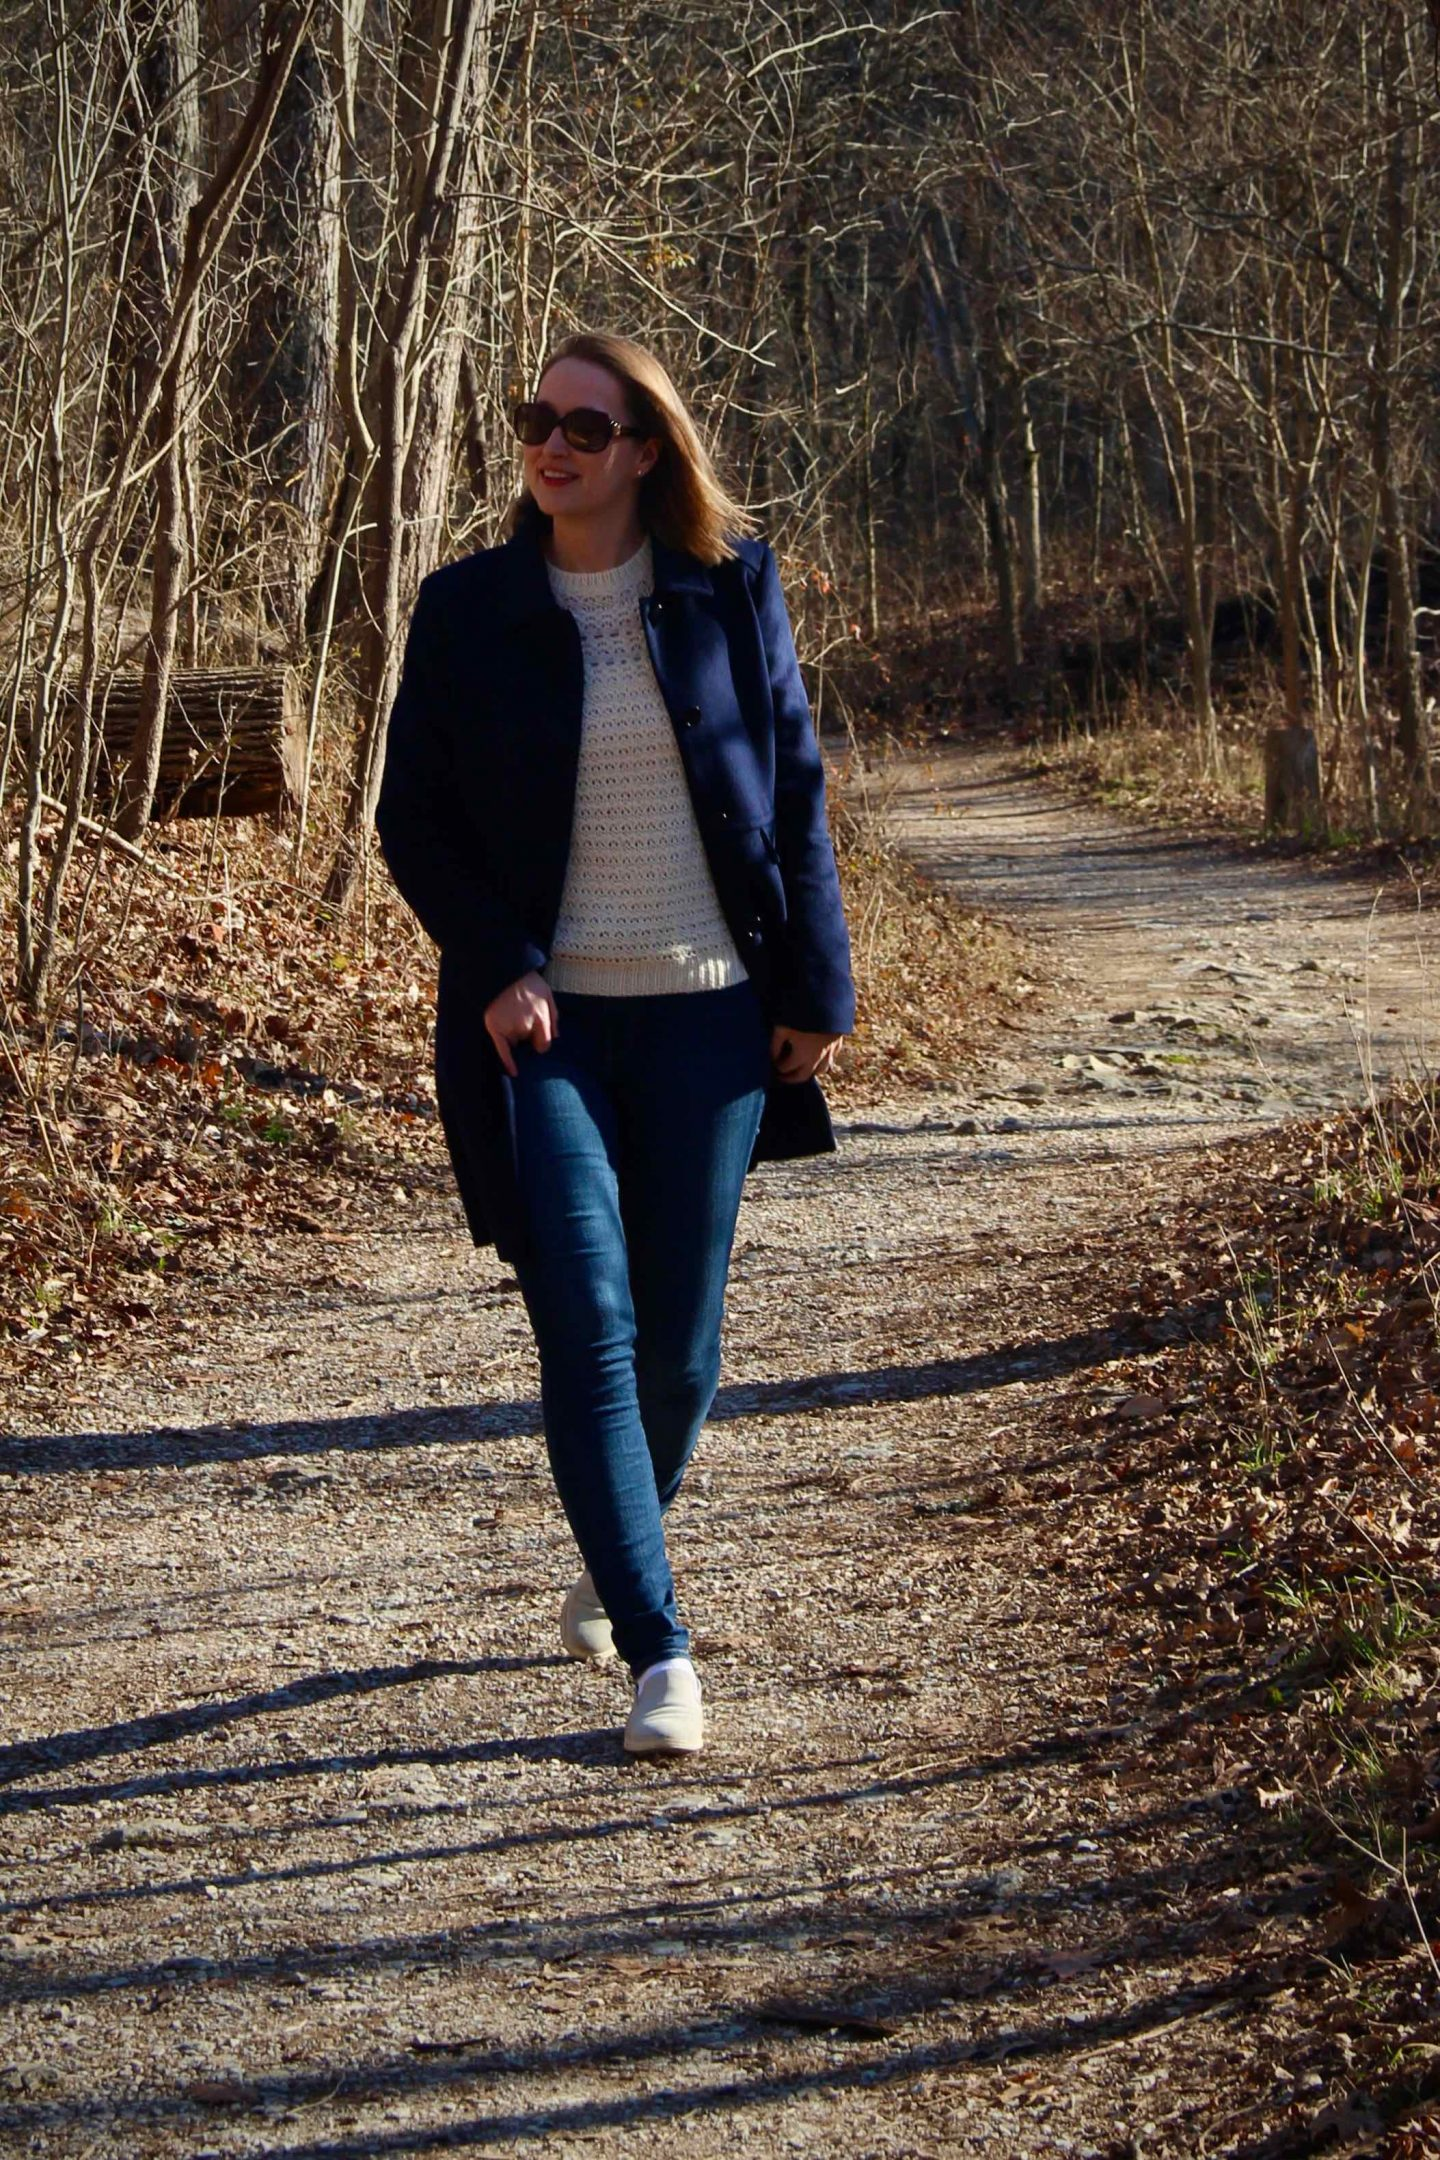 Preppy Winter Outfit | Walks through Sharon Woods Cincinnati | The Spectacular Adventurer